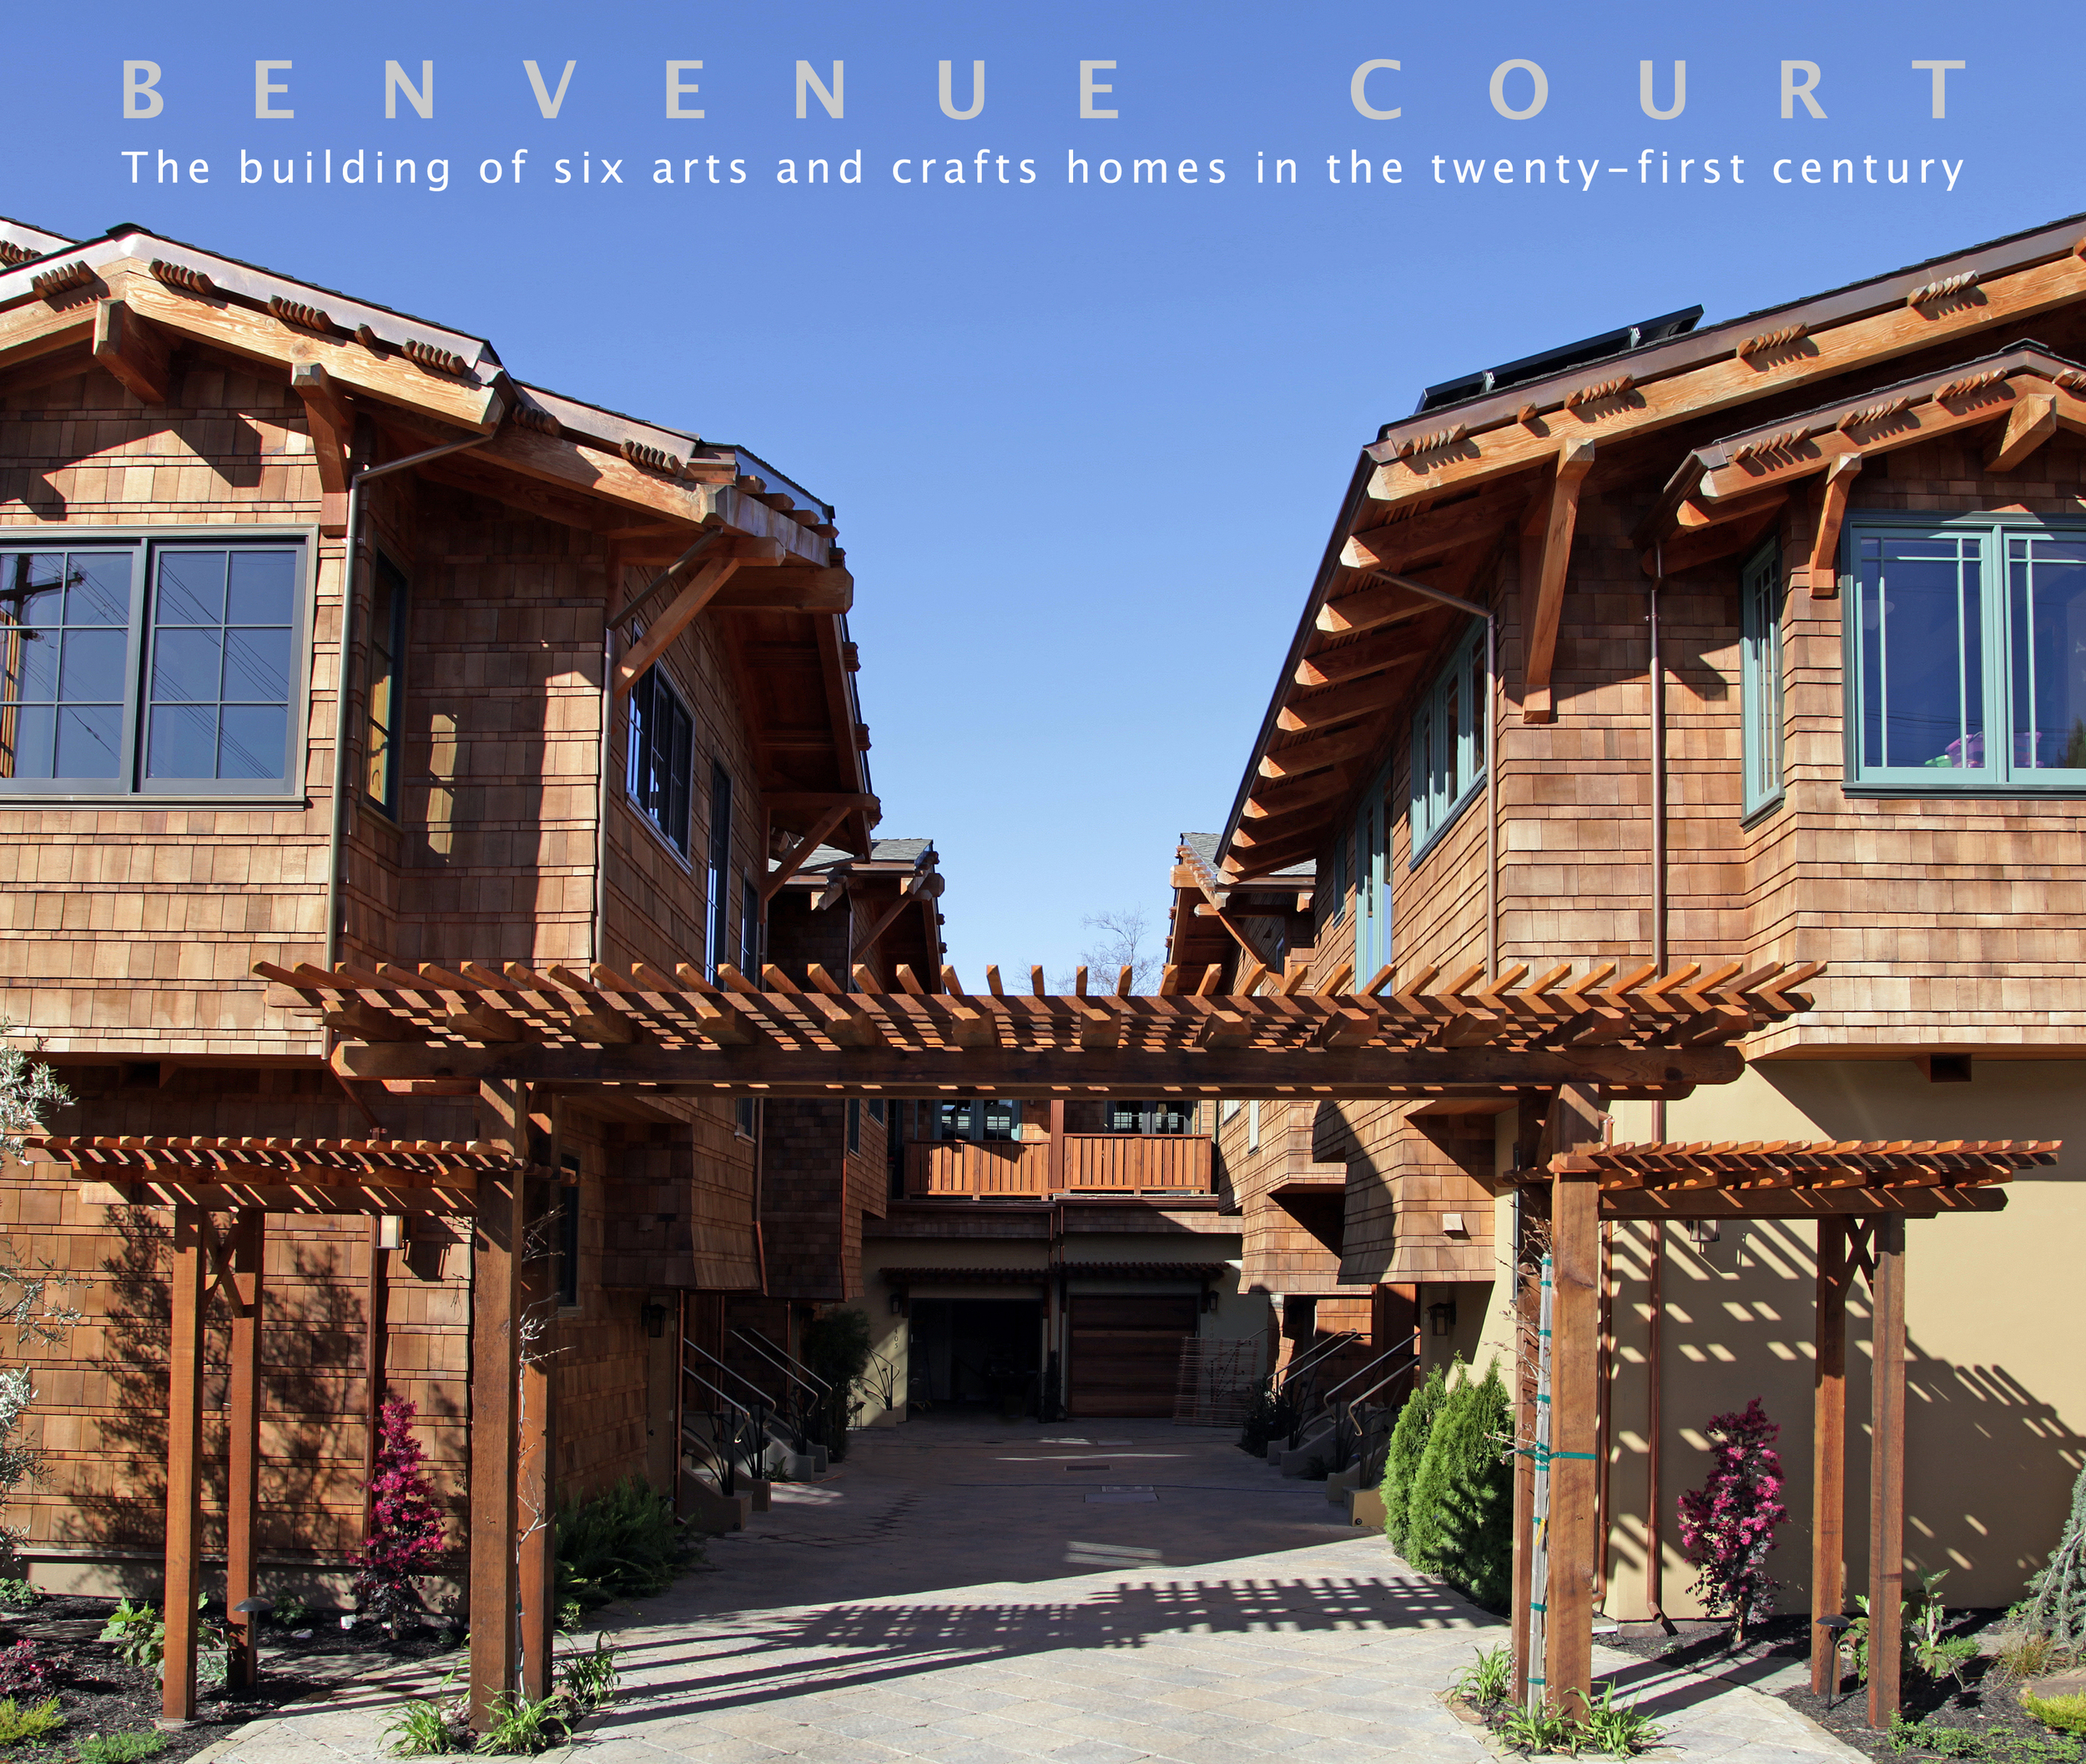 Benvenue Court   Hardcover. 13 by 11 inches, 102 pages  The building of six arts and crafts homes in the twenty-first century  A visual story of the process of building six modern arts and crafts houses in Berkeley, California. The book covers the progression of the construction from the very beginning until the end.